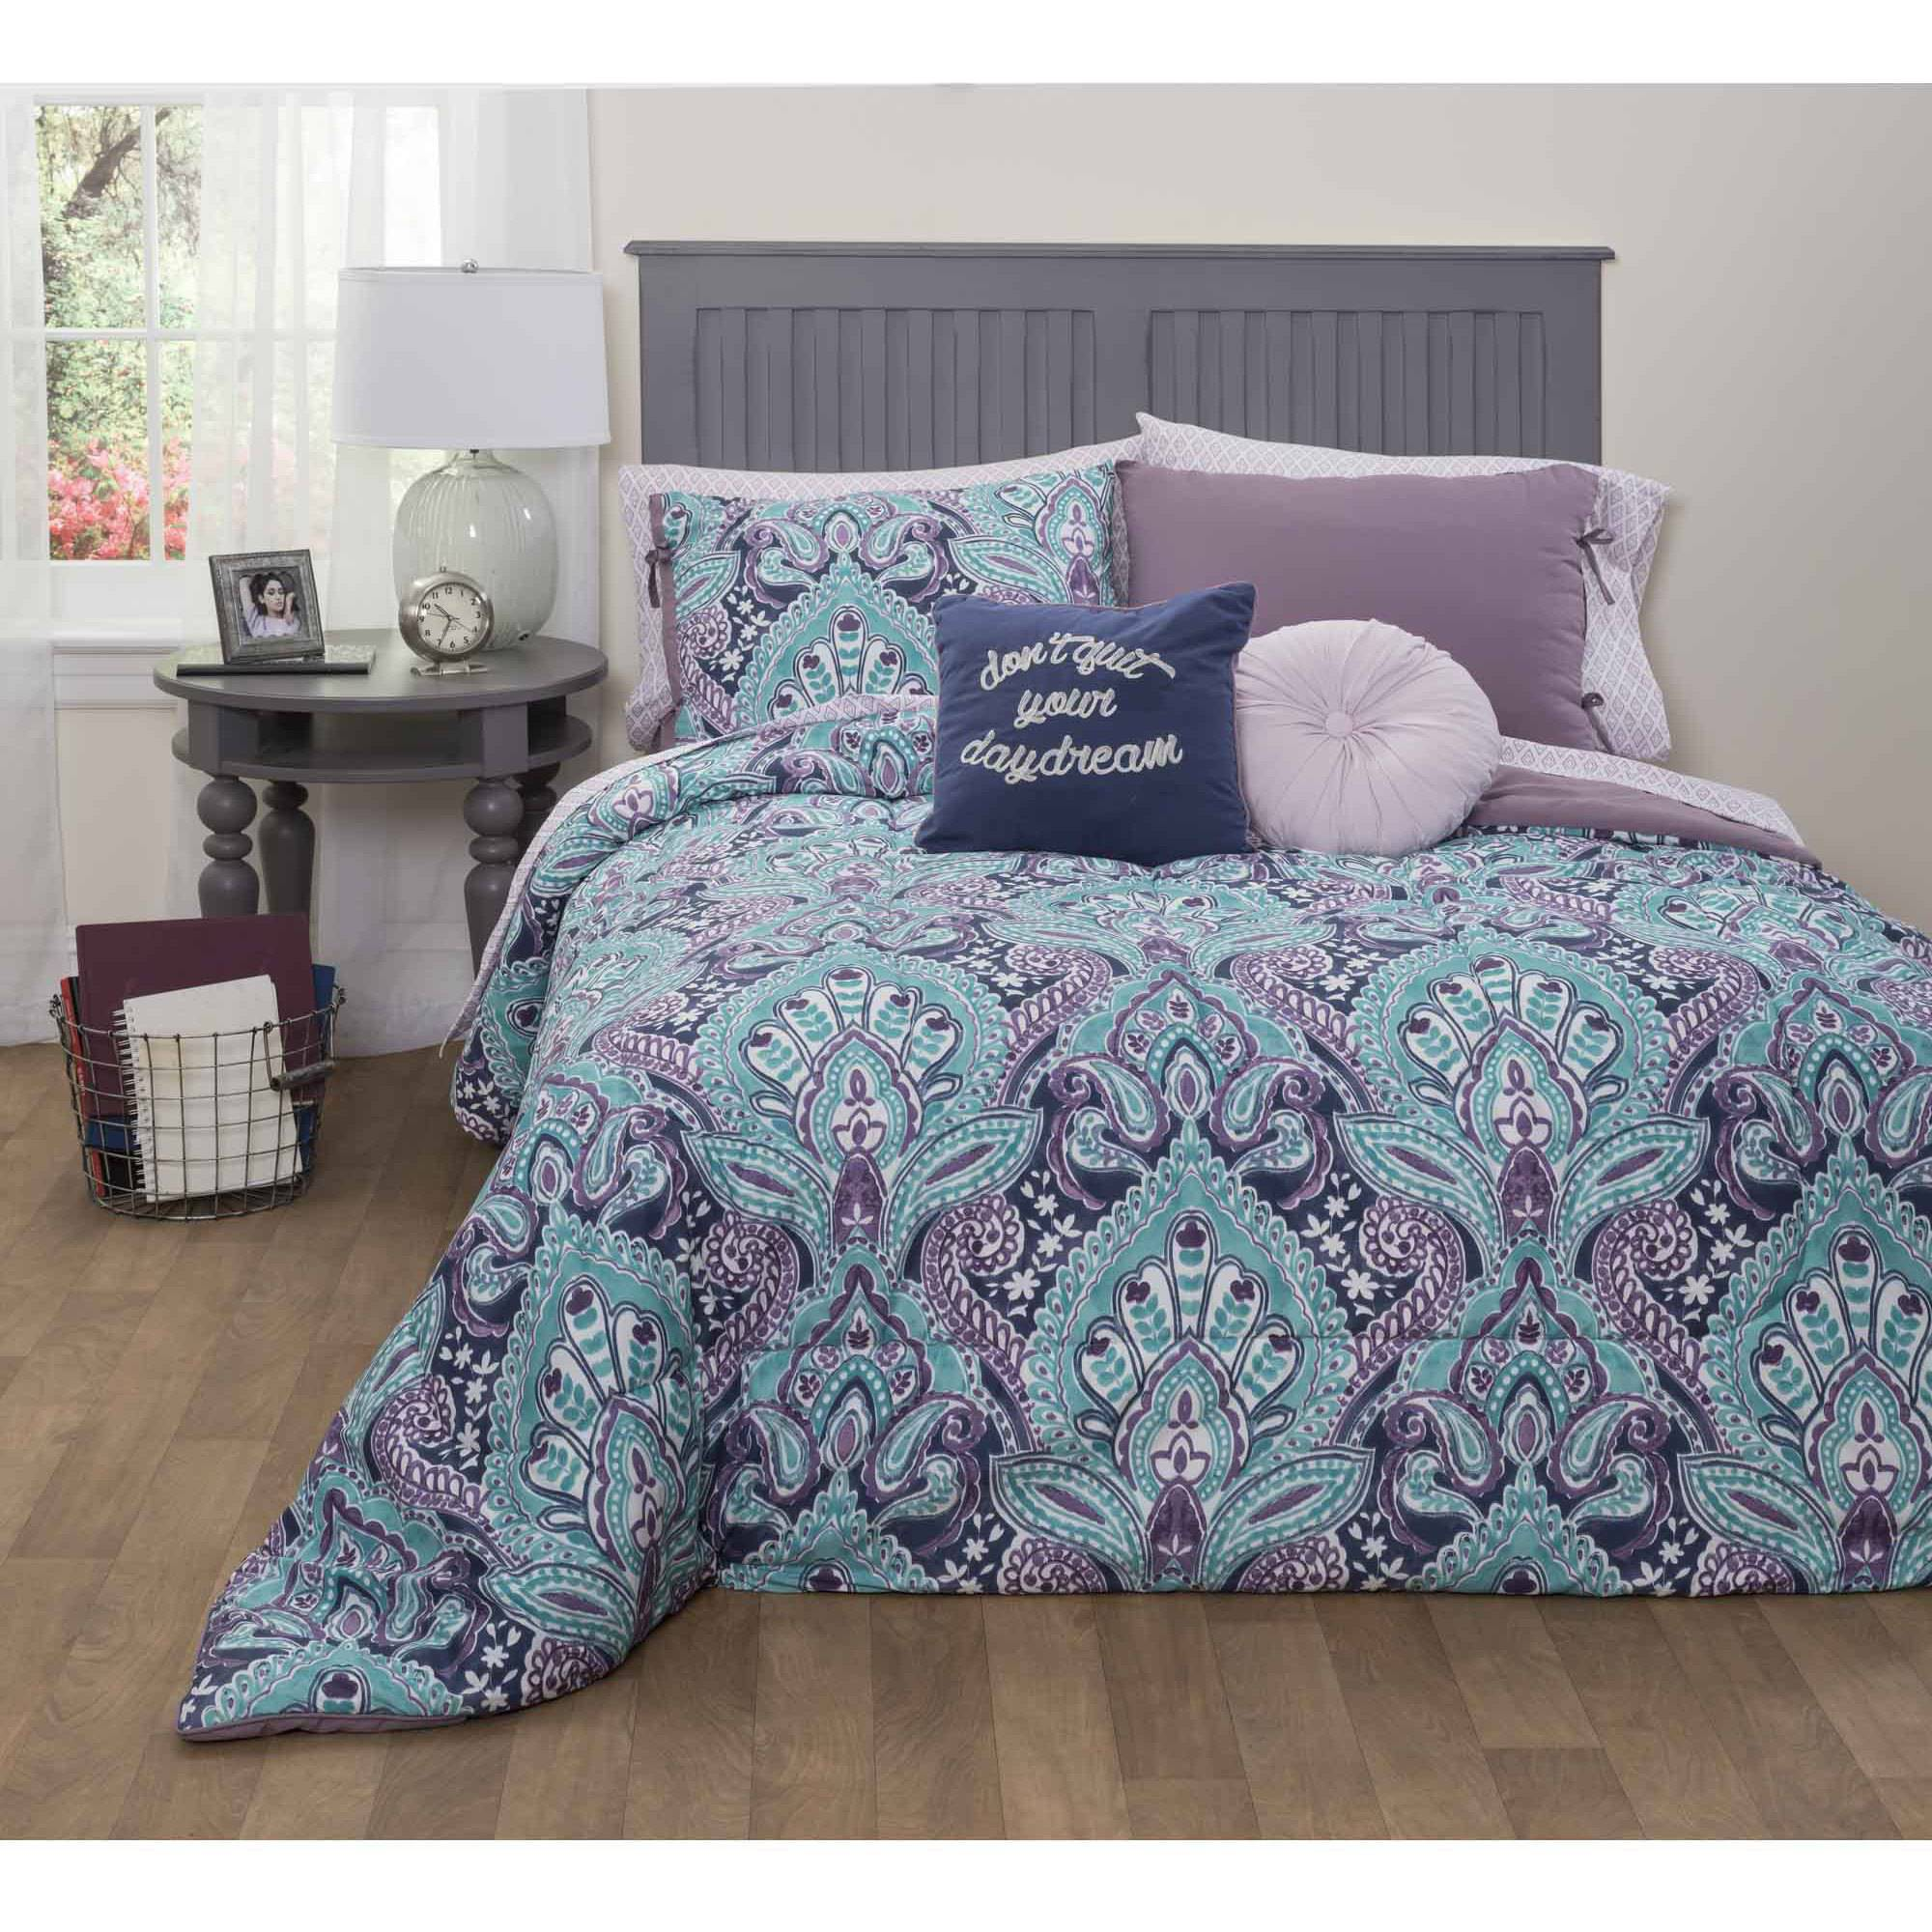 Purple And Teal Damask Bedding Bedding Designs